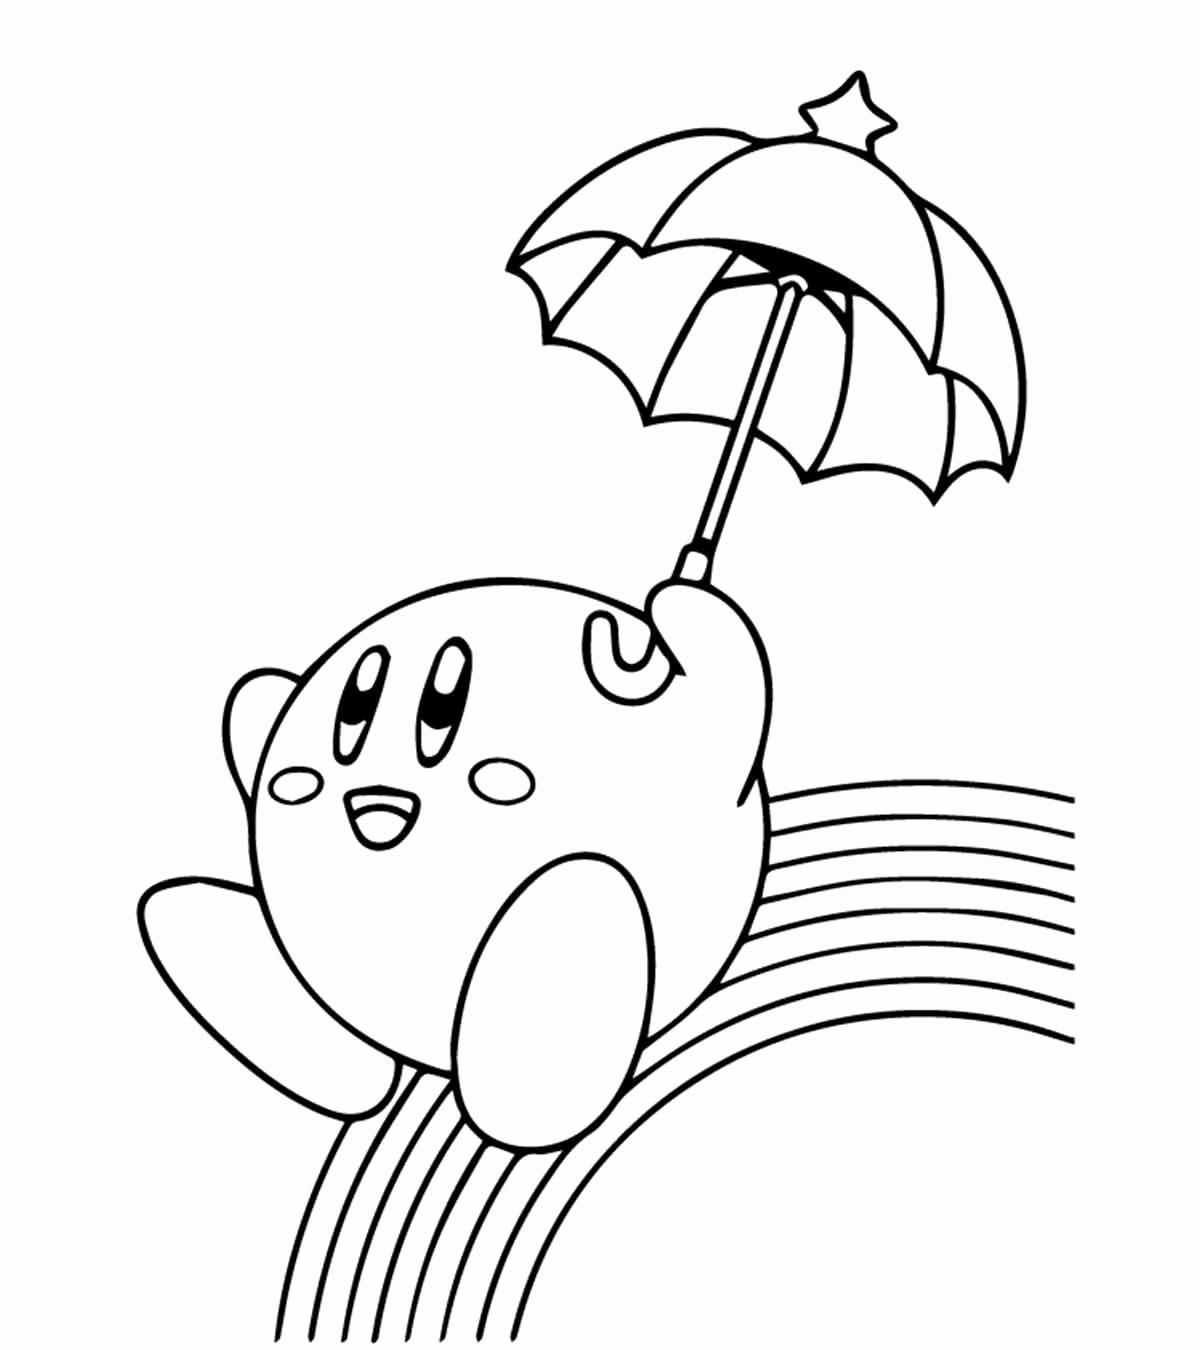 Pin on Best Anime Kawaii Coloring Pages